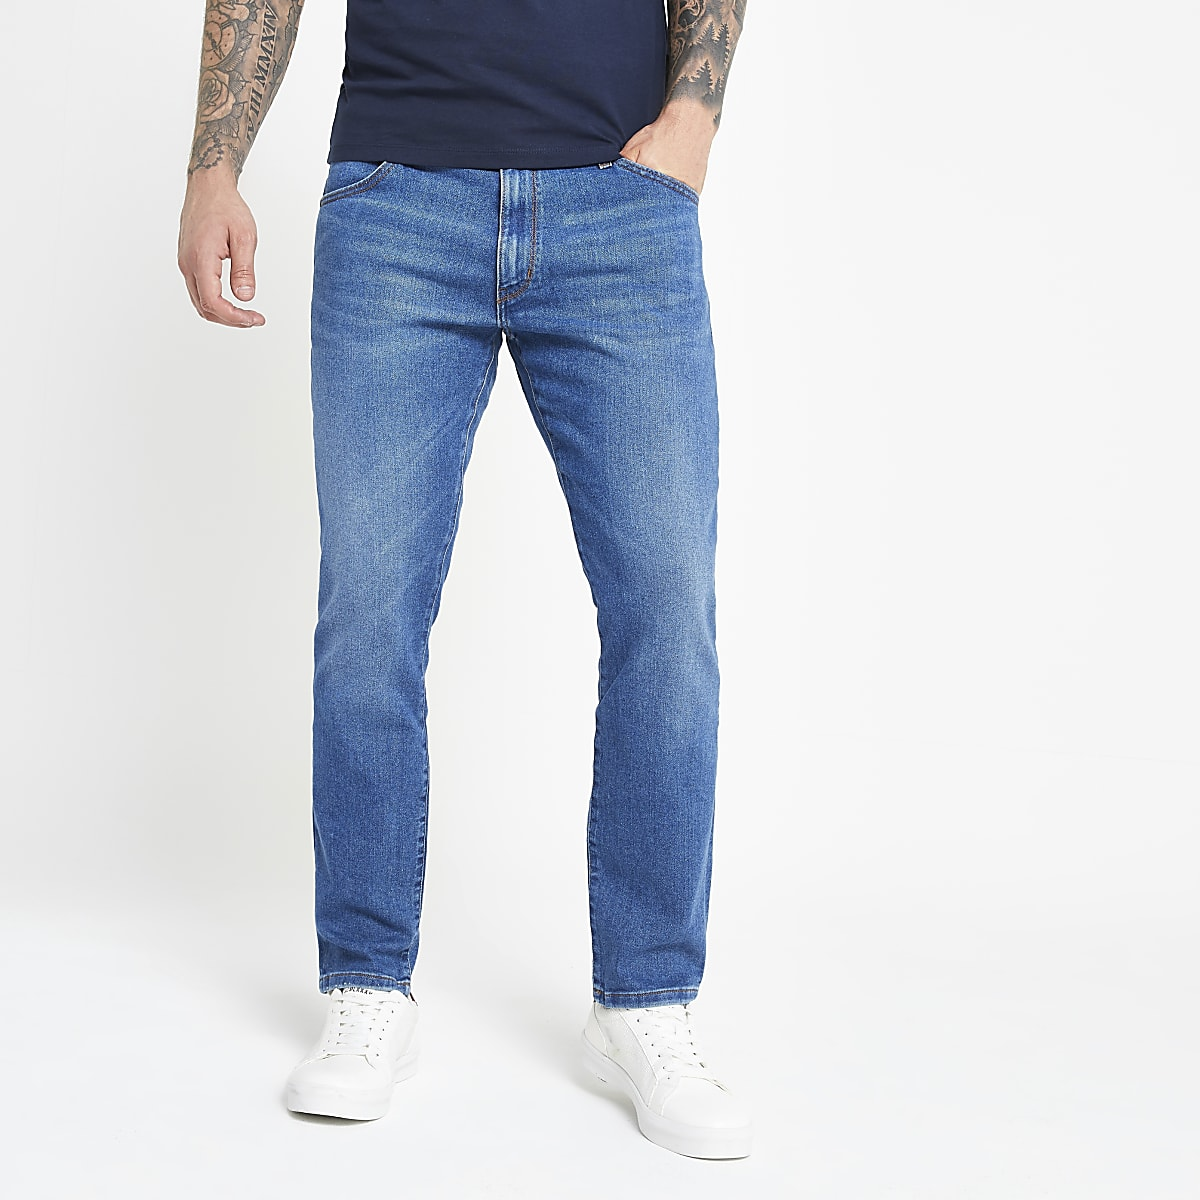 Wrangler light blue slim fit jeans